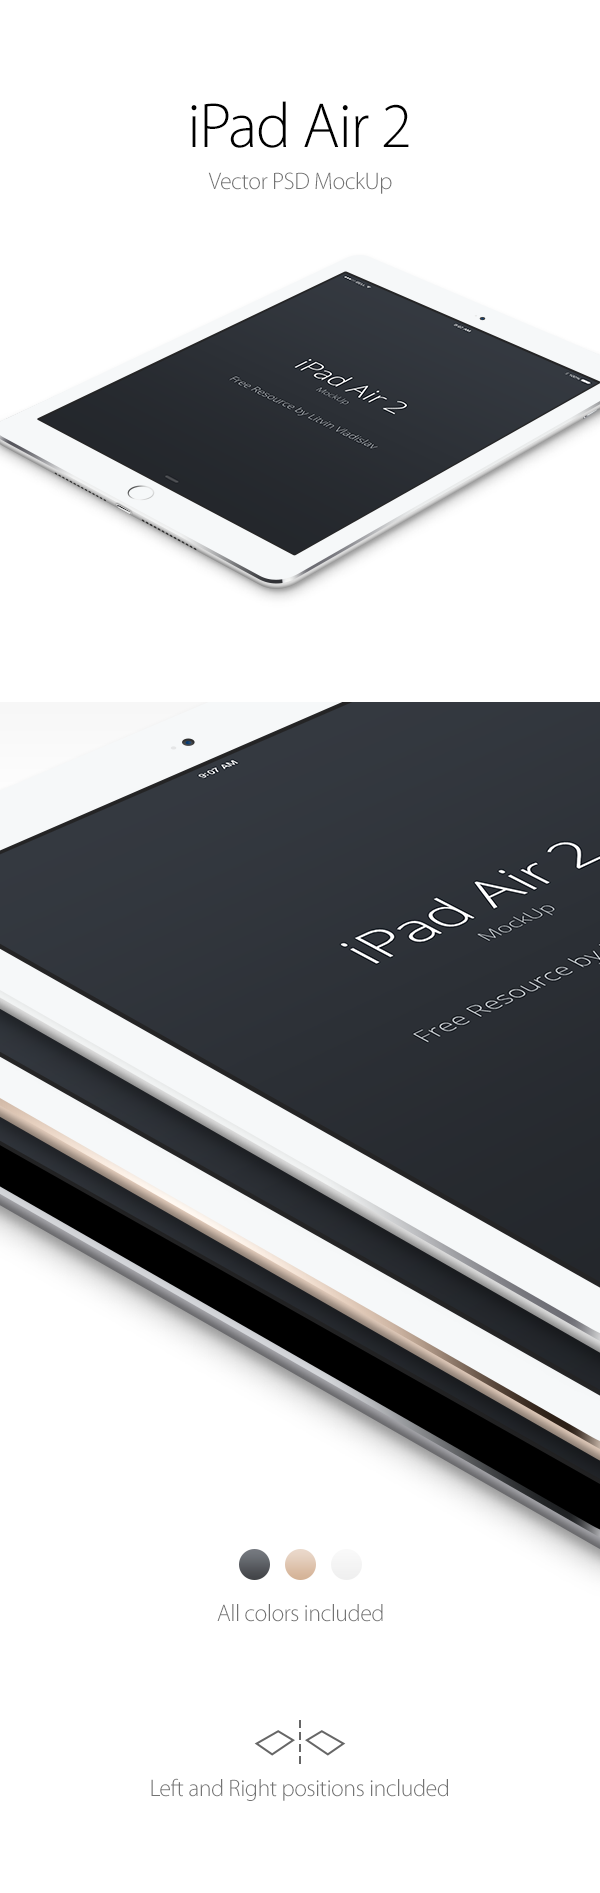 iPad-Air-2-Perspective-MockUp